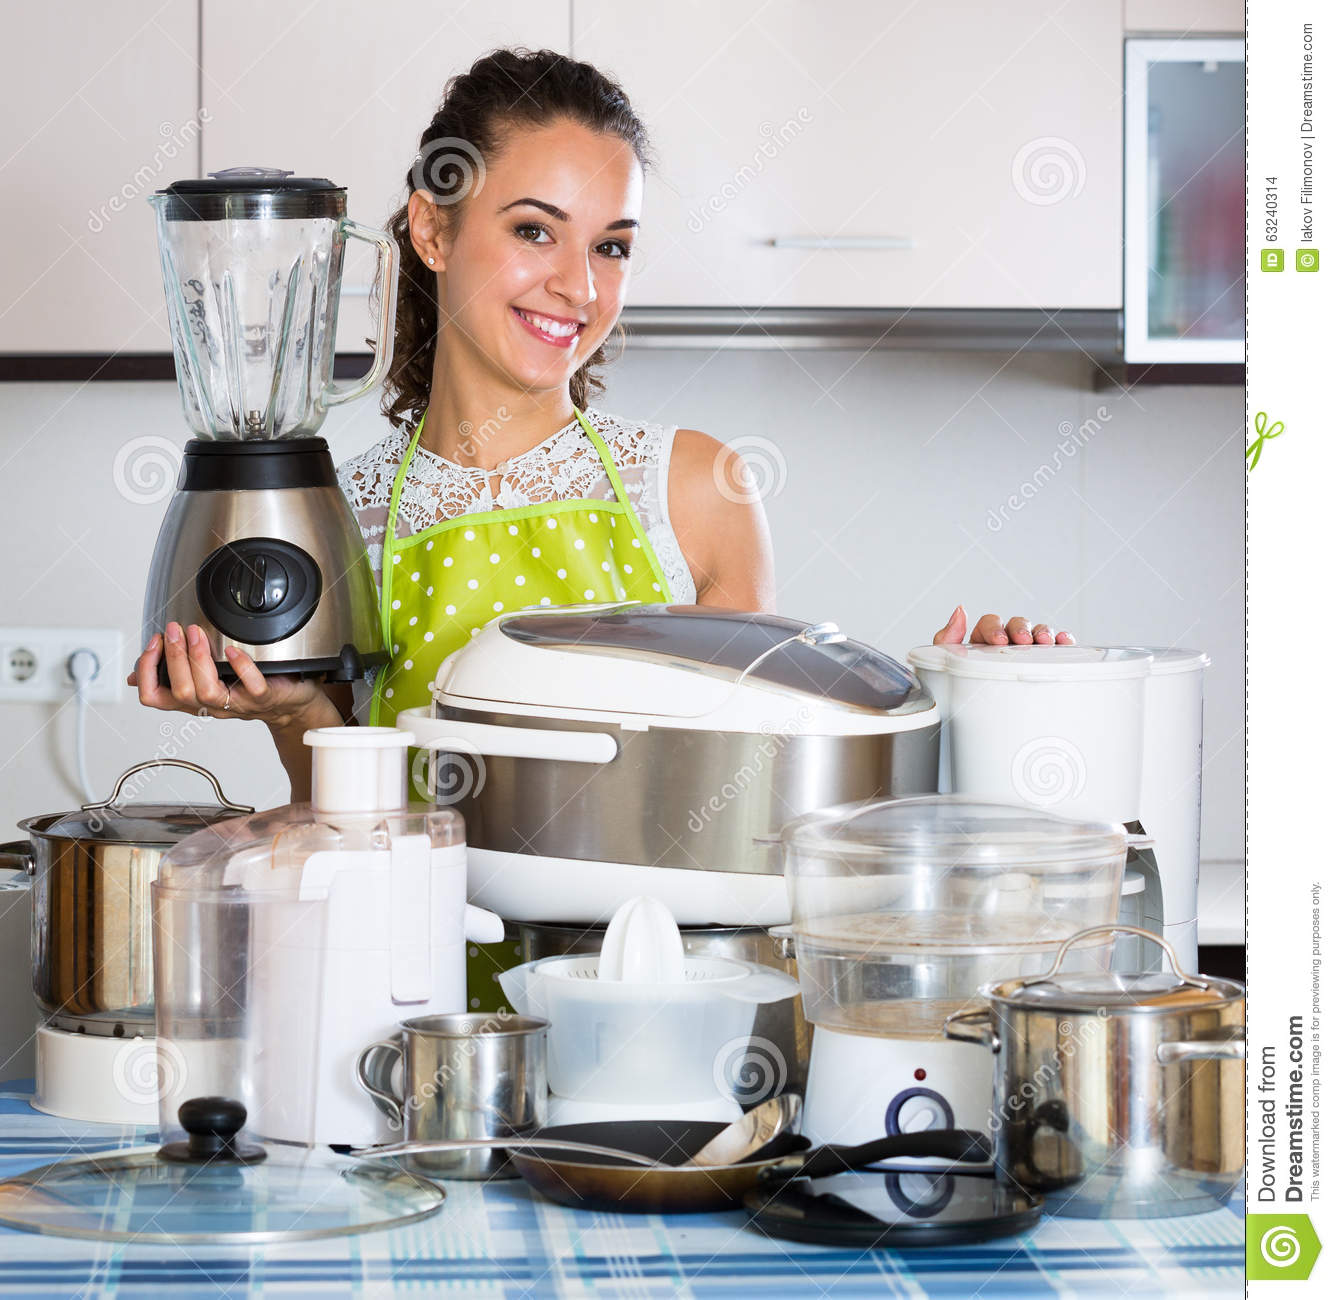 Happy Girl Kitchen: Girl With Kitchen Appliances At Home Stock Photo